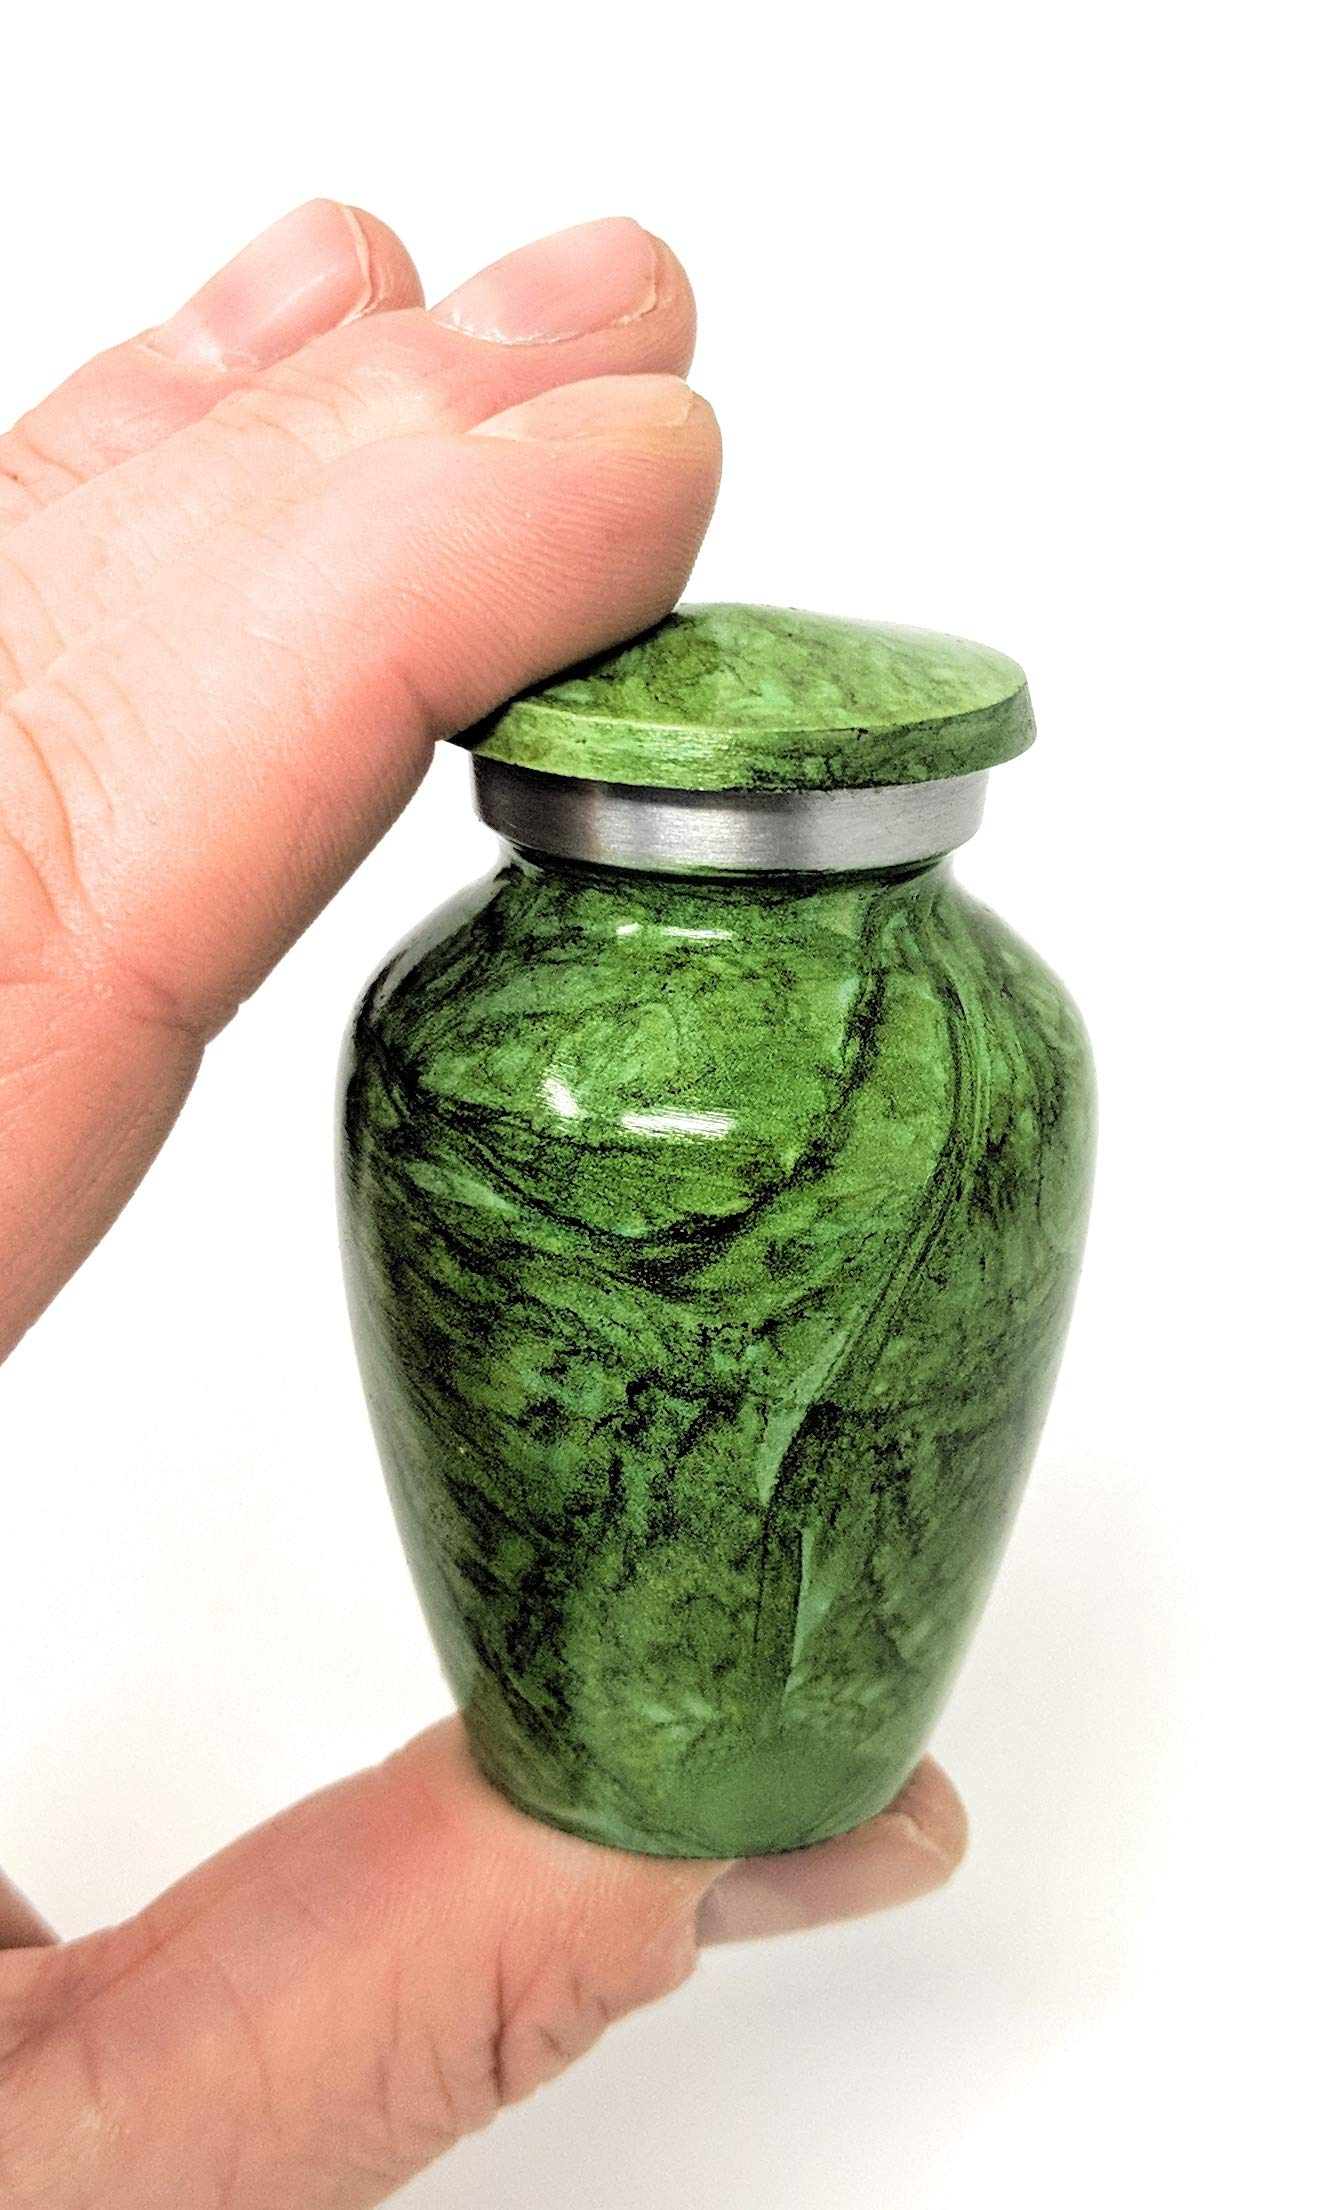 Color : Black WEI Pet Urns Mini Funeral Urn for Adult/&Pet Ashes,Human small Memorial Urns,Handmade Ceramics Keepsake,Burial Urn at Home or Cemetery,dog,cat